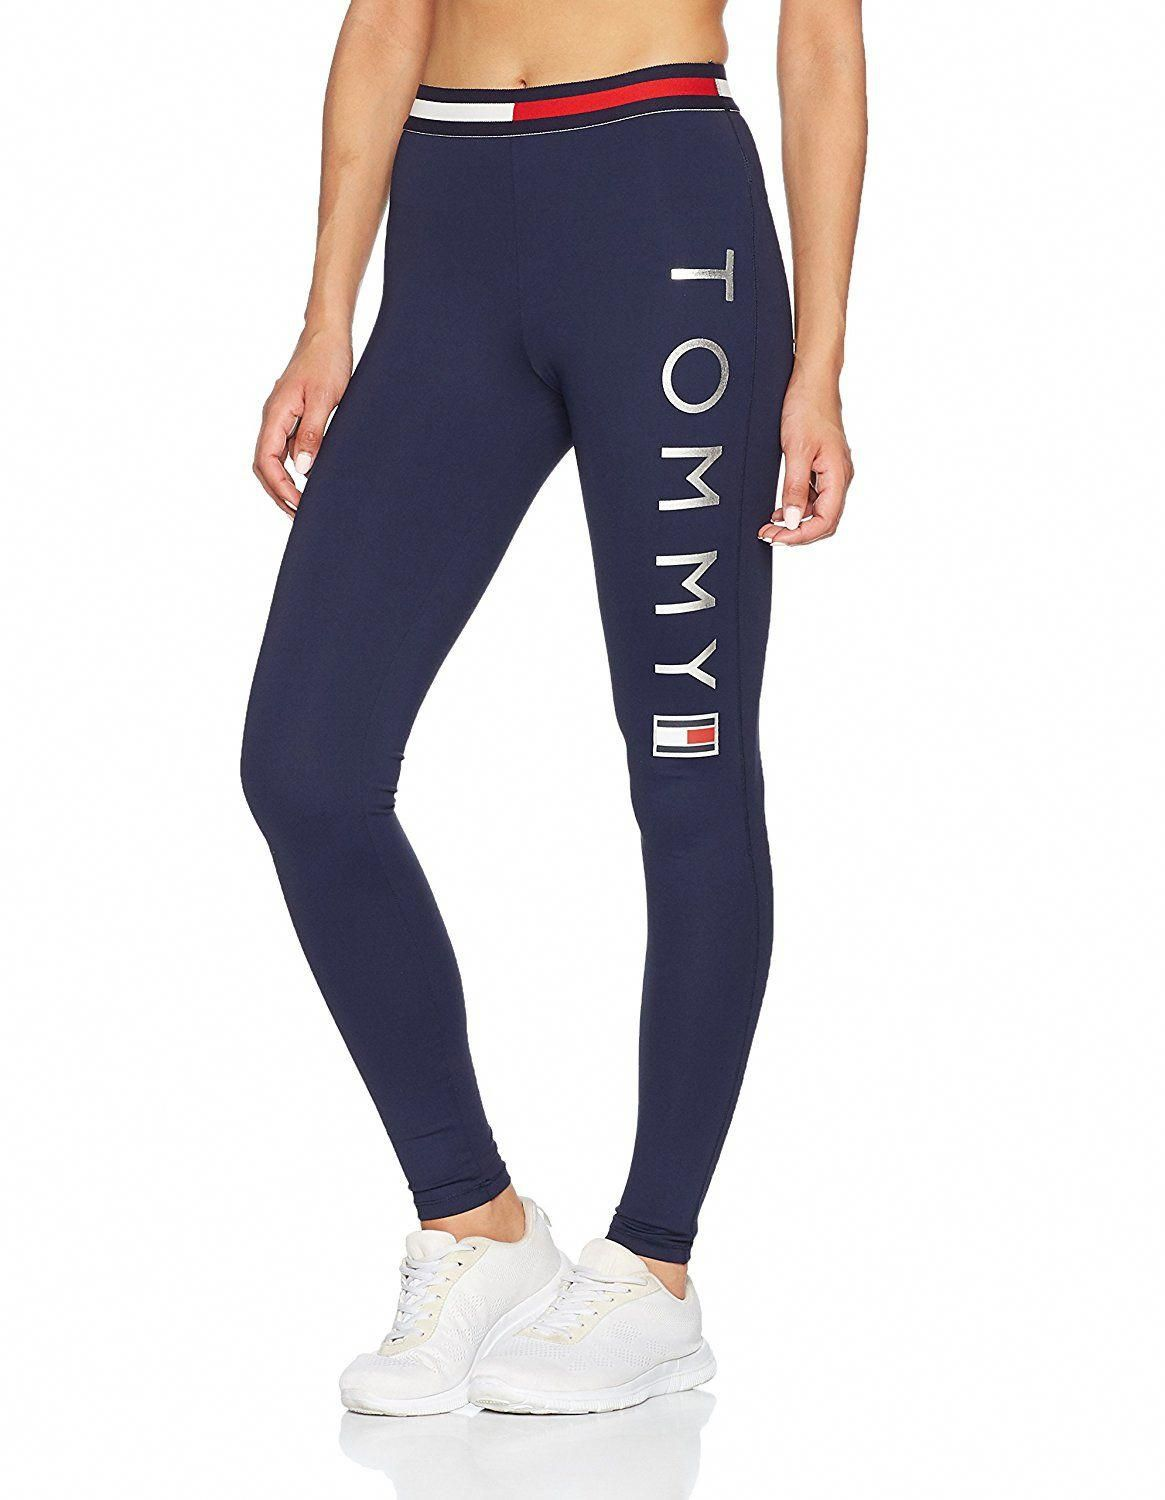 6c87c46623fe4 Image result for tommy hilfiger leggings yoga pants #yogapants ...